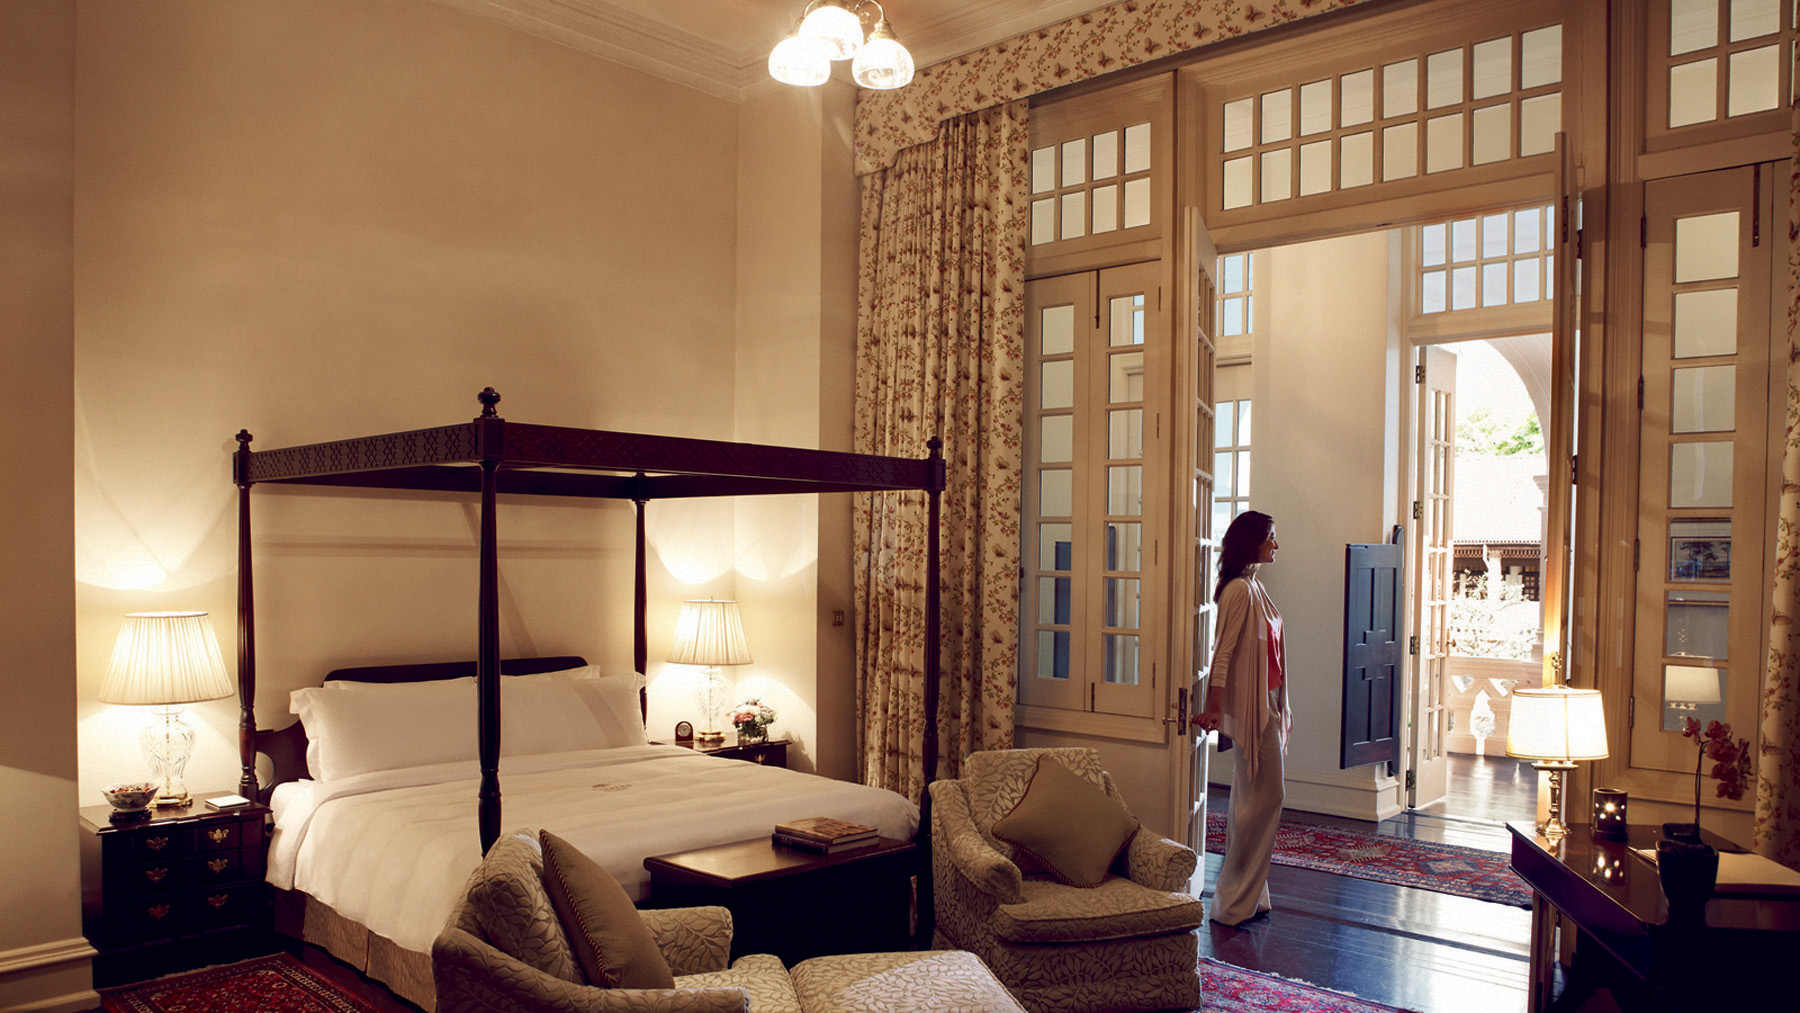 Raffles hotel in singapore closing for renovation cnn travel